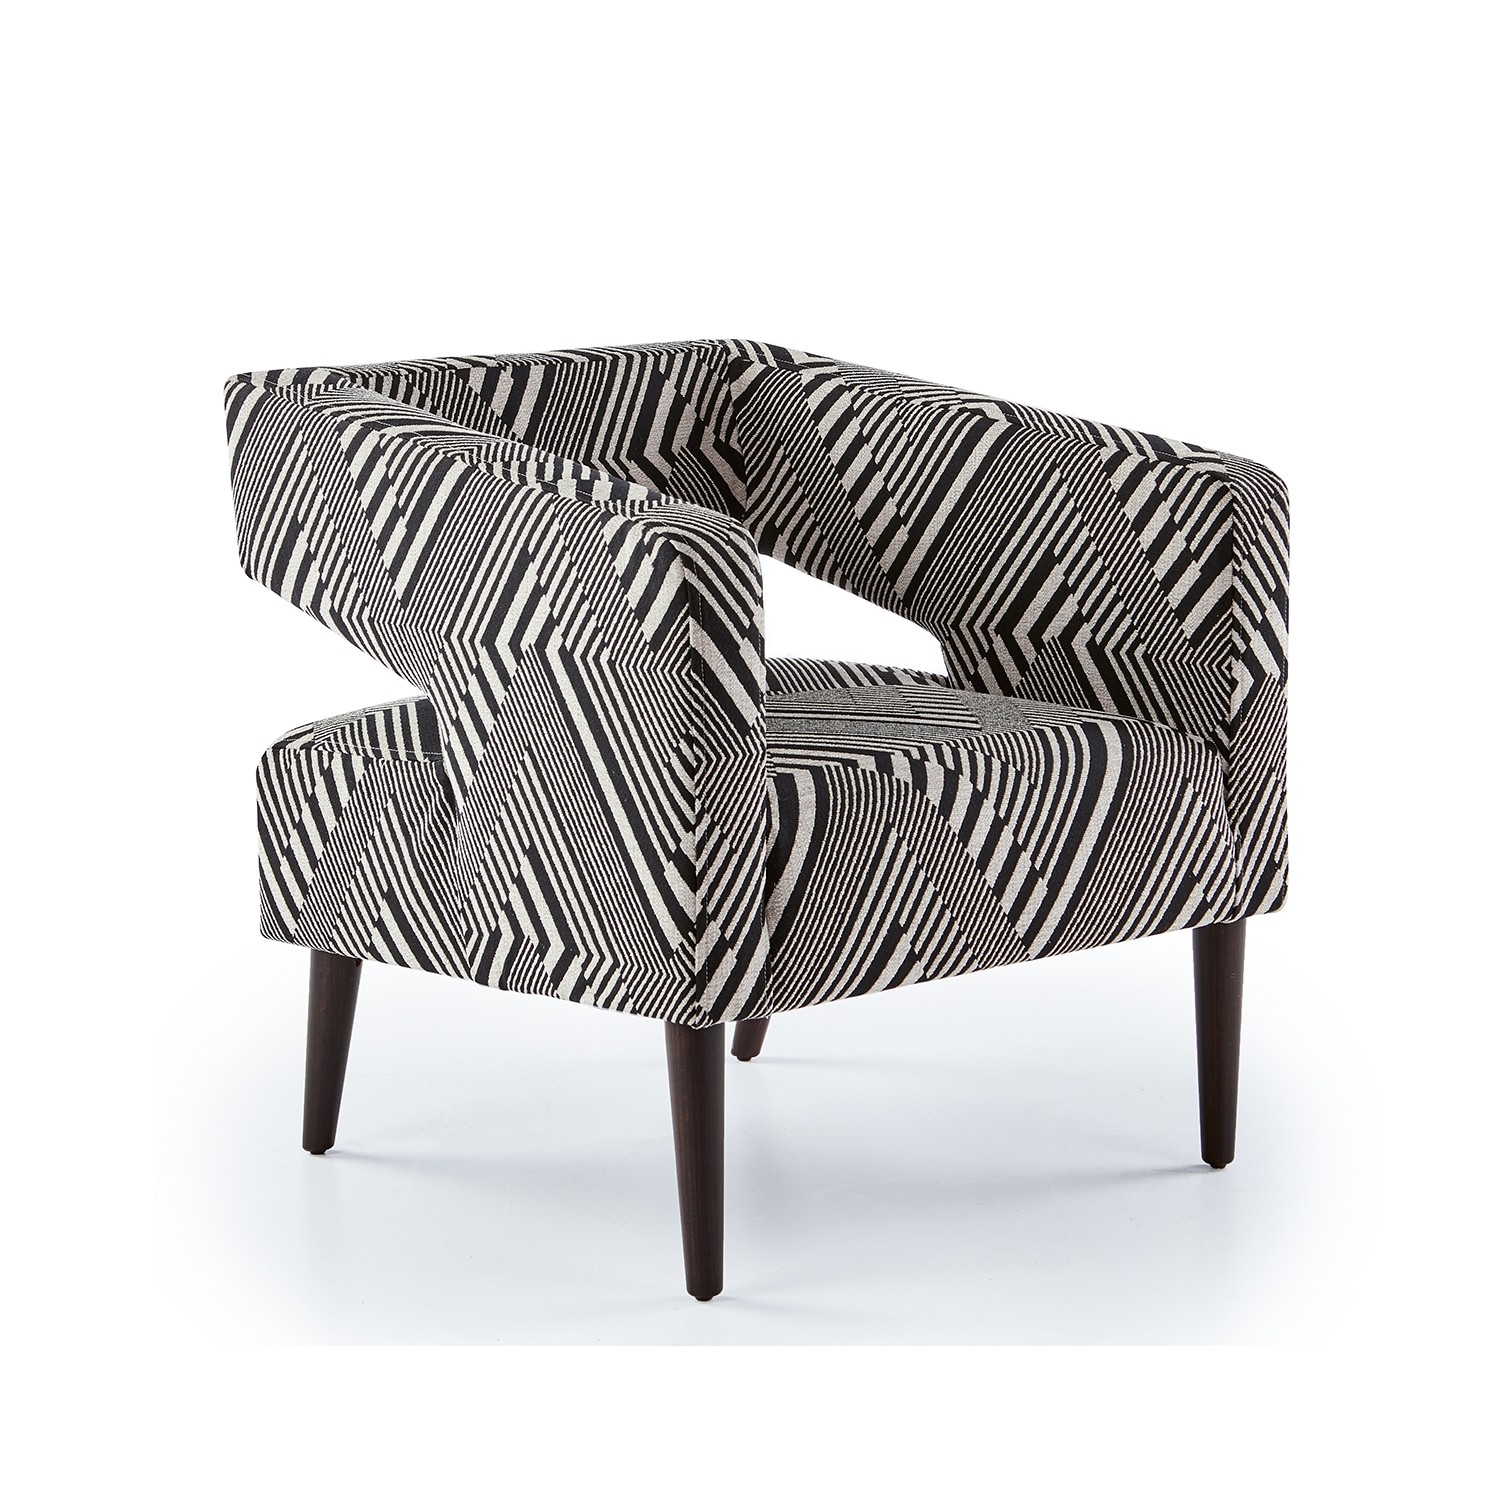 Terrific Tosca Fabric Accent Chair Creativecarmelina Interior Chair Design Creativecarmelinacom